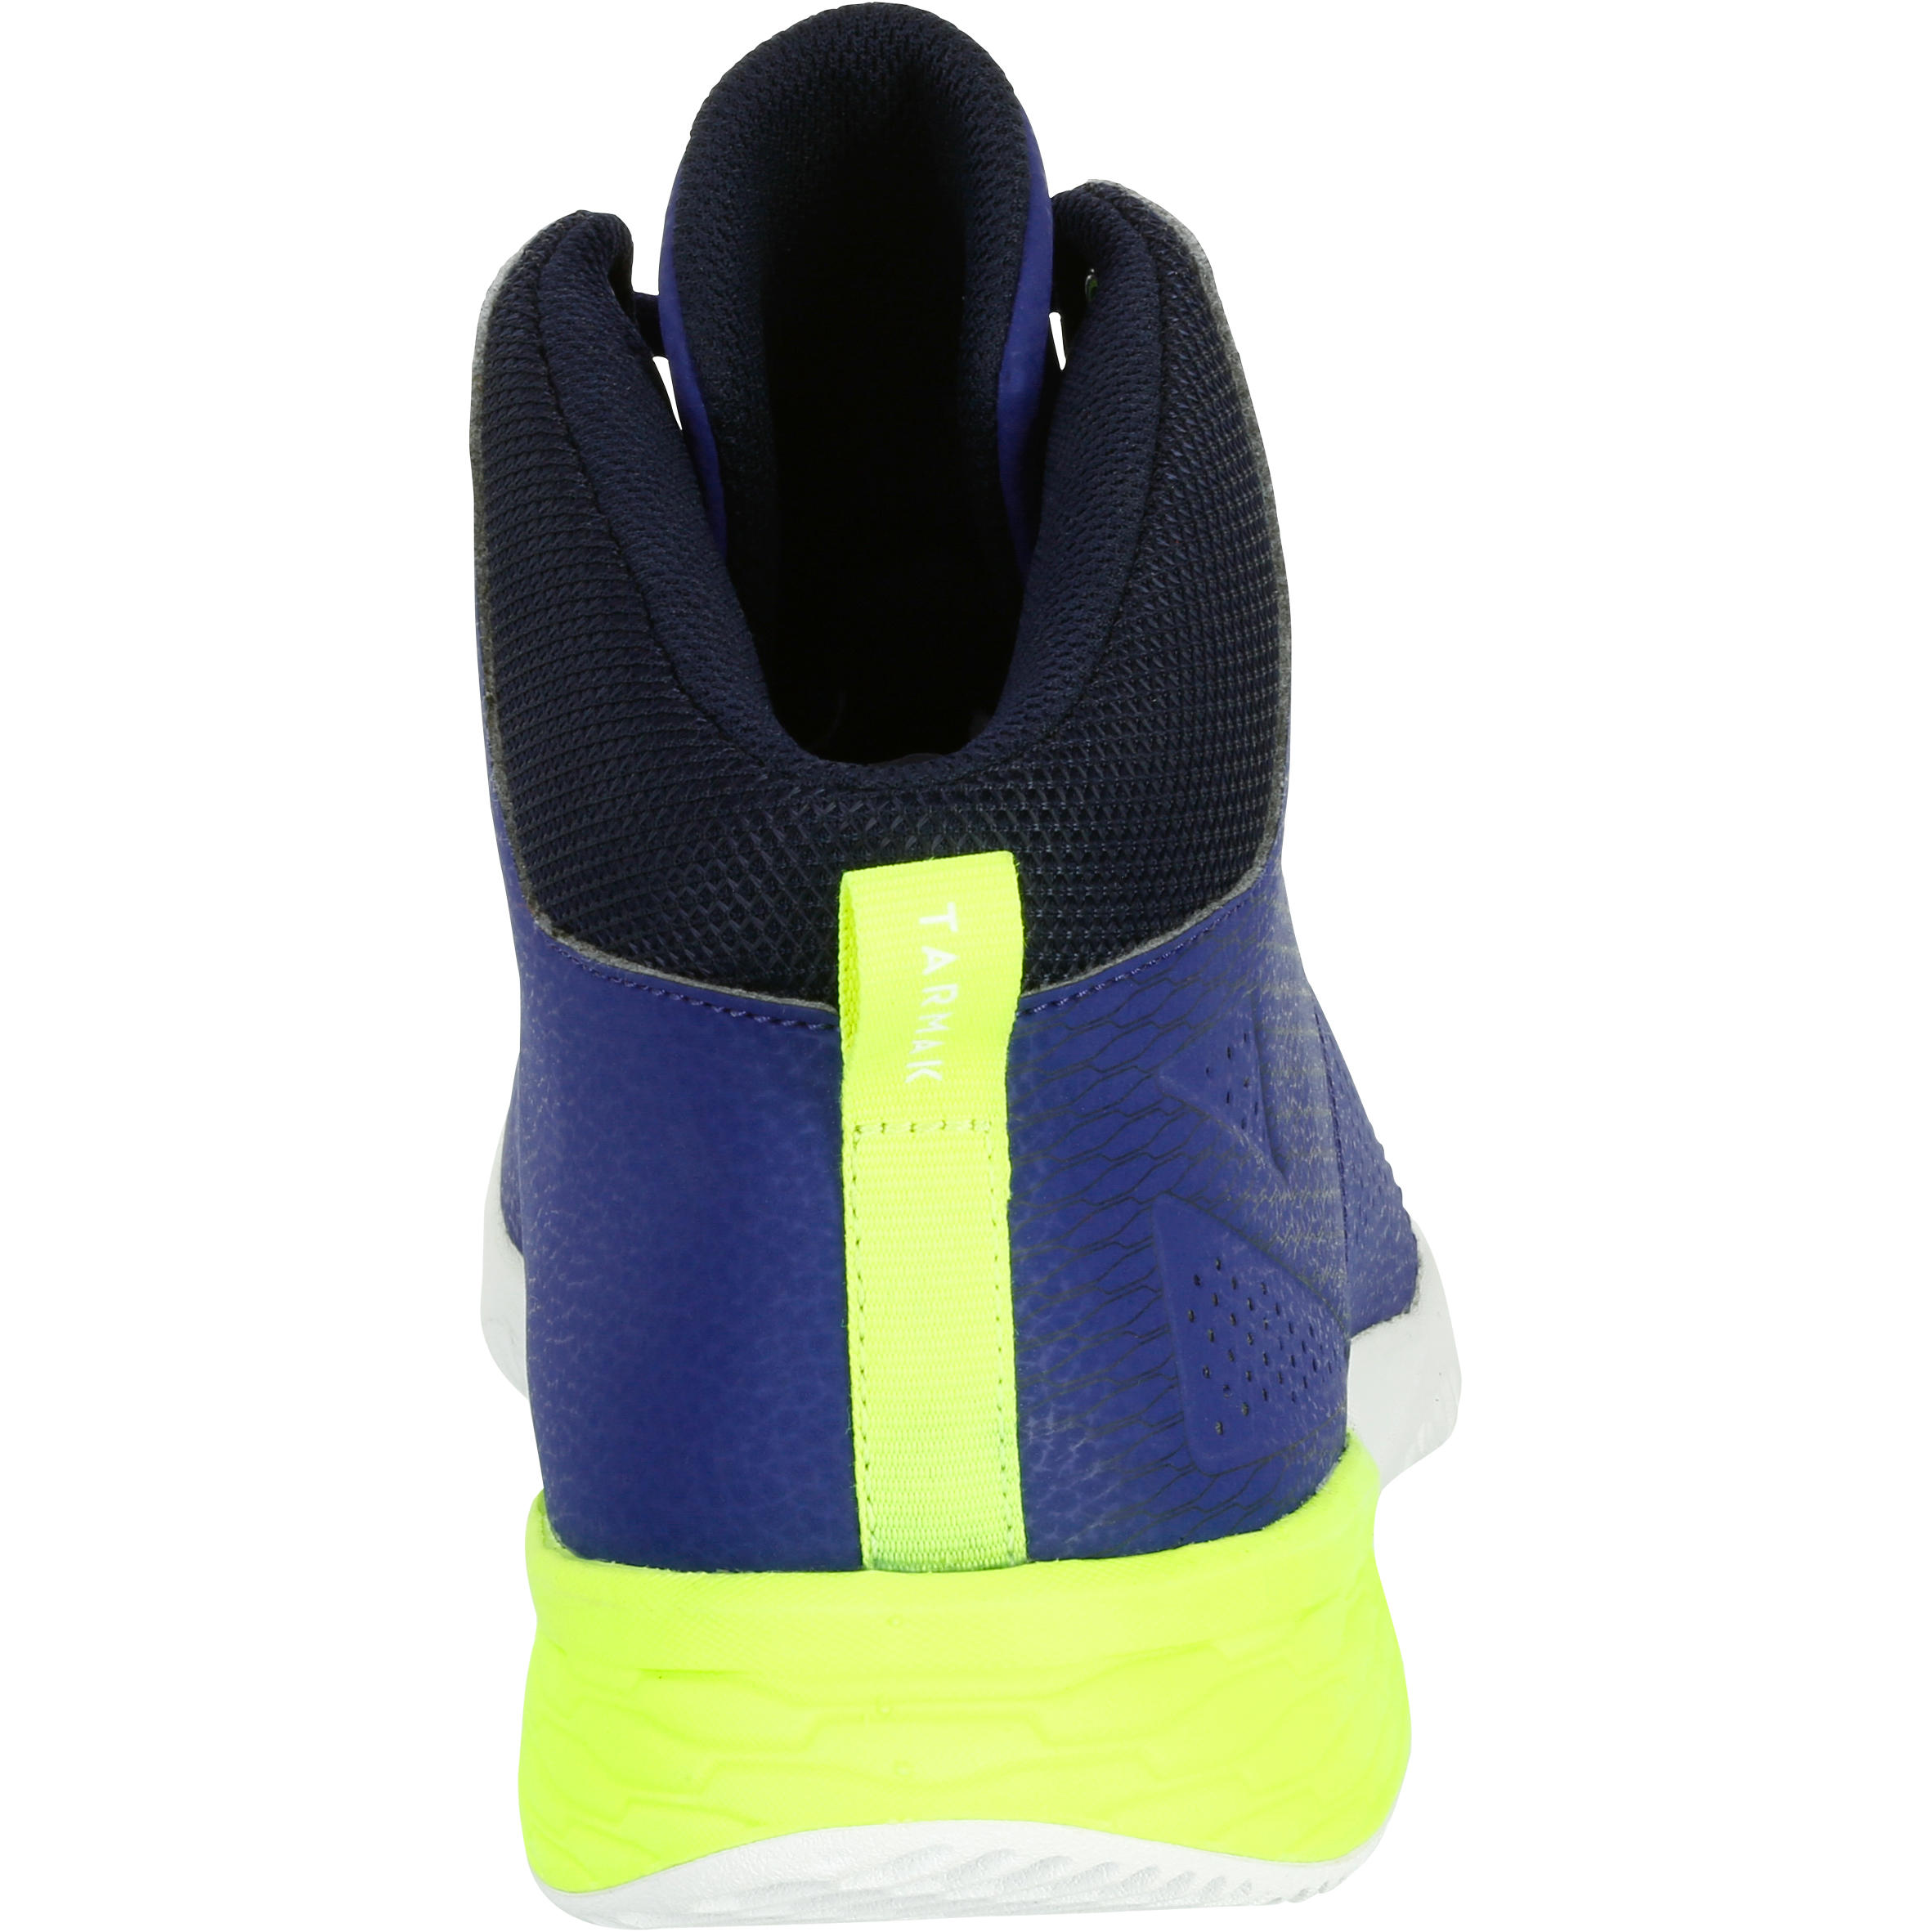 Strong 300 II Beginner Adult Basketball Shoes - Blue/Yellow